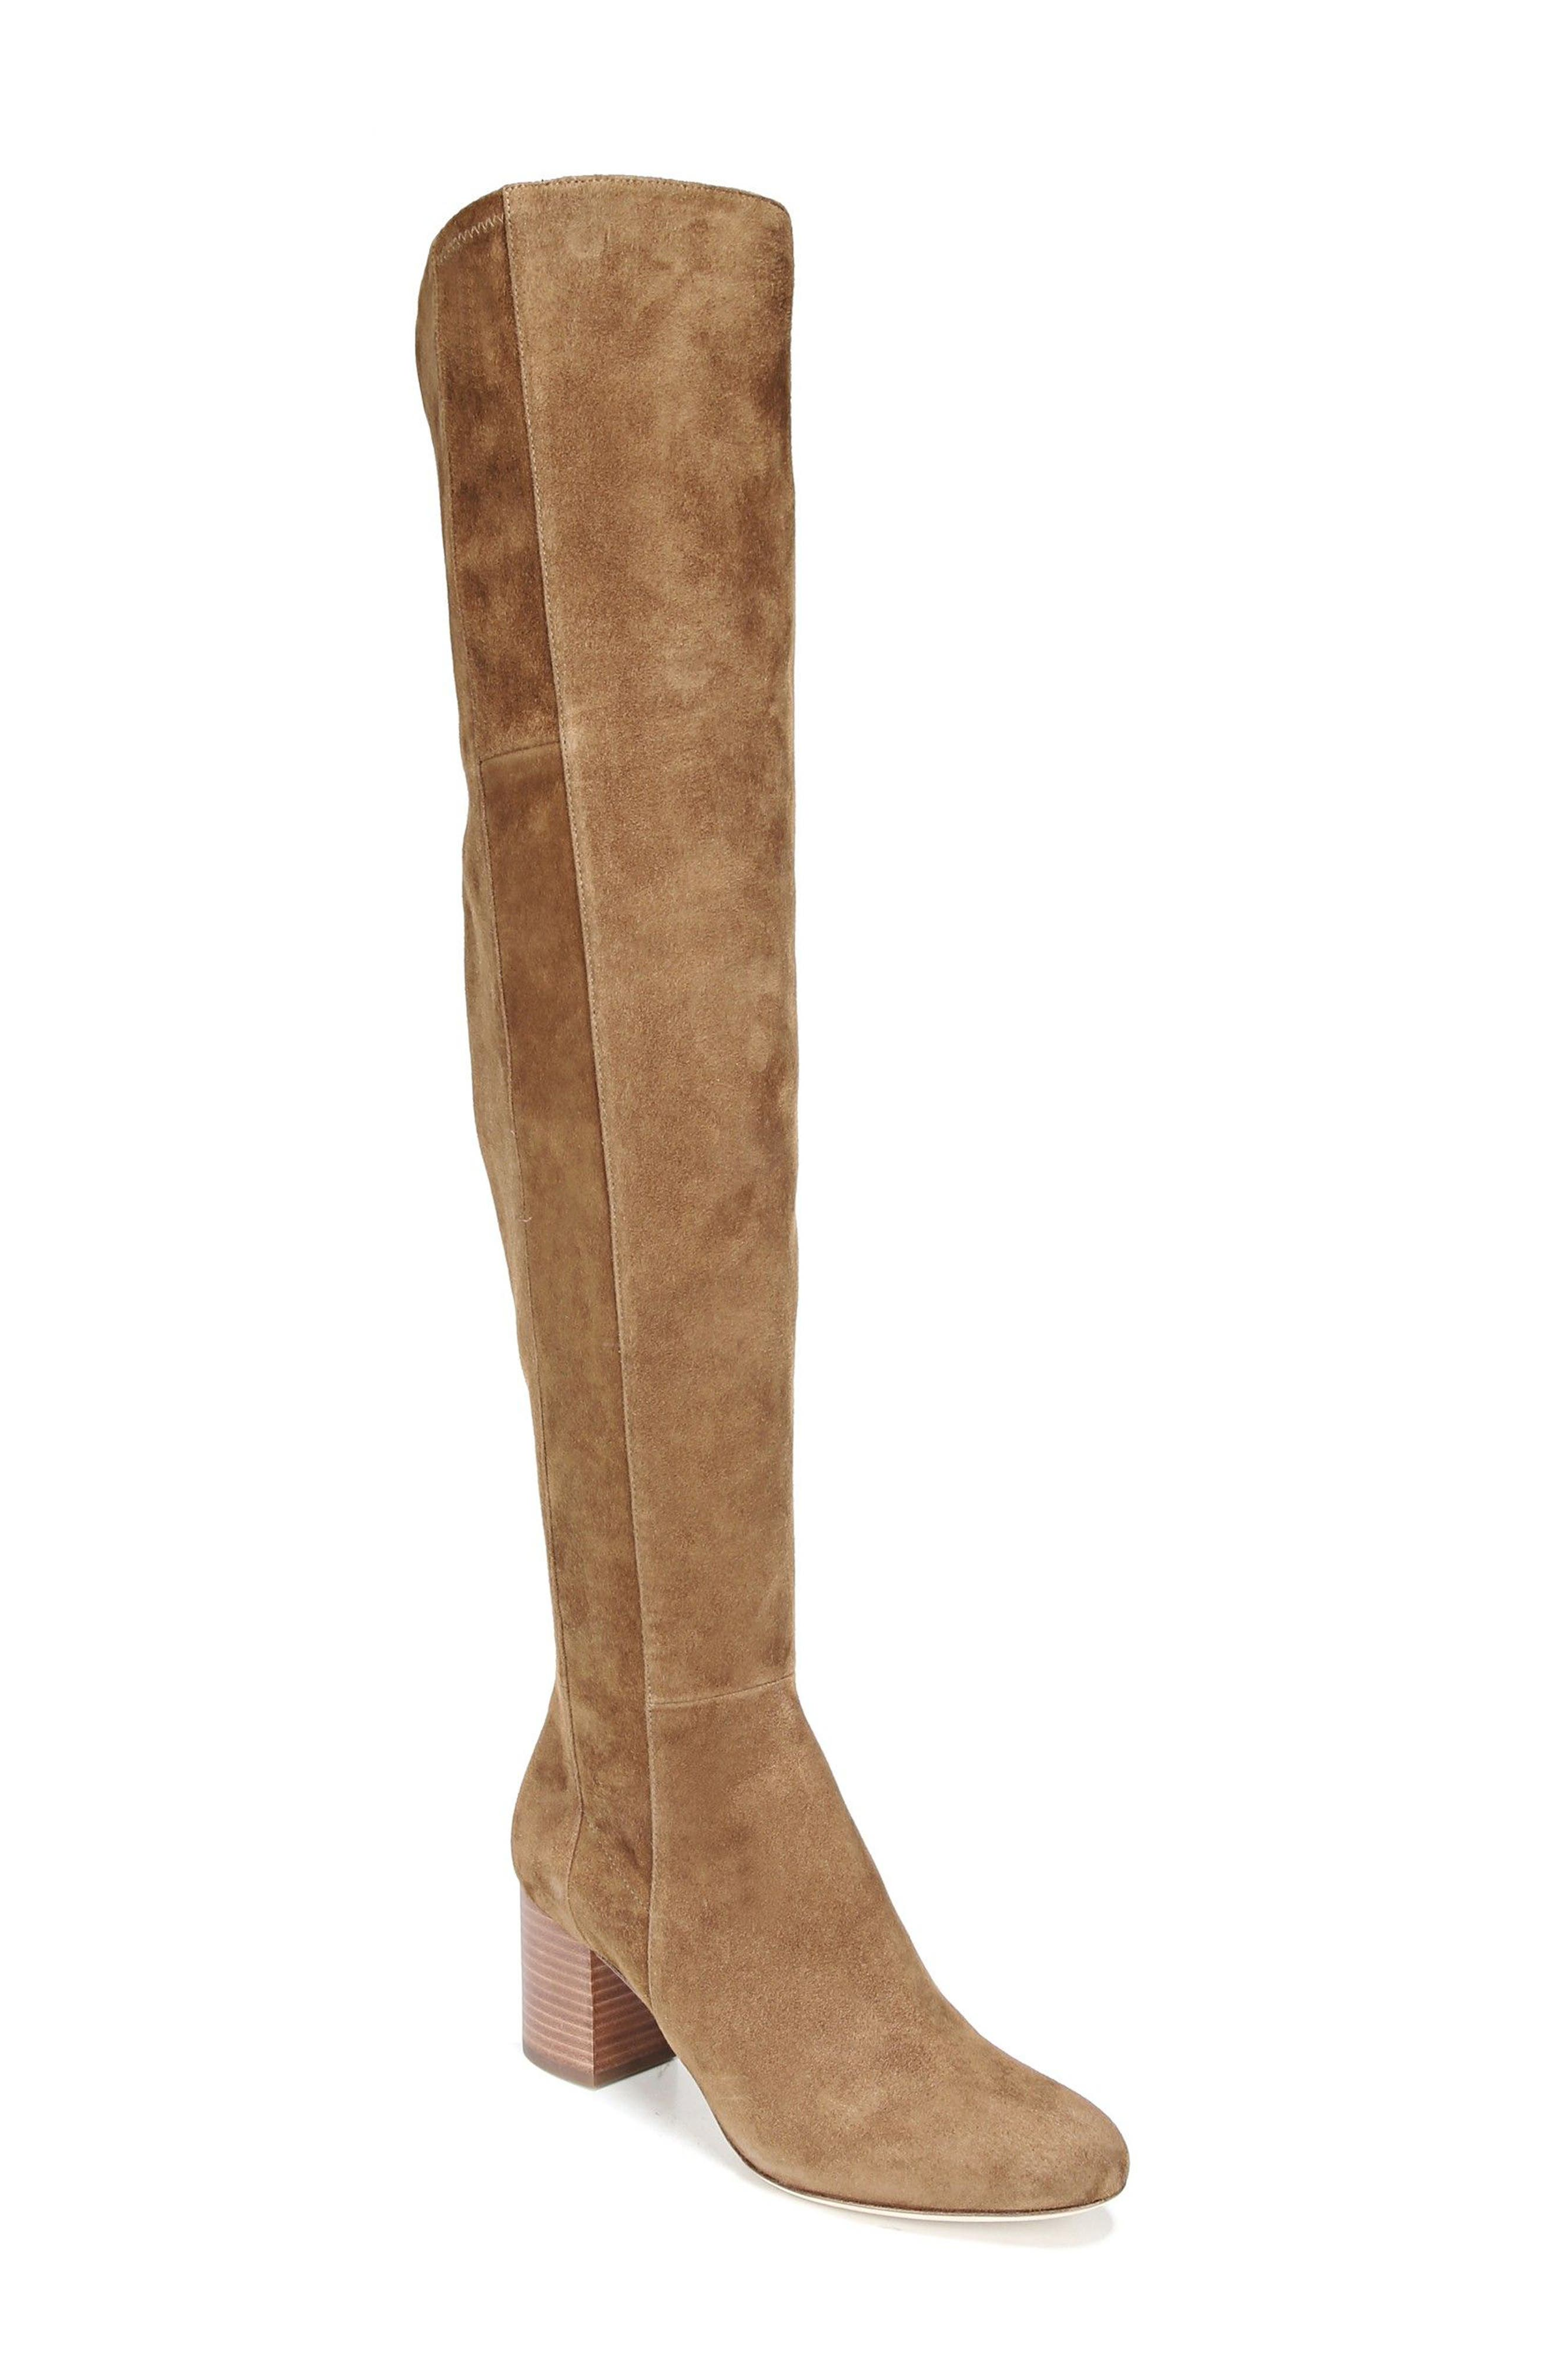 Luzzi Over the Knee Boot,                             Main thumbnail 1, color,                             Clove